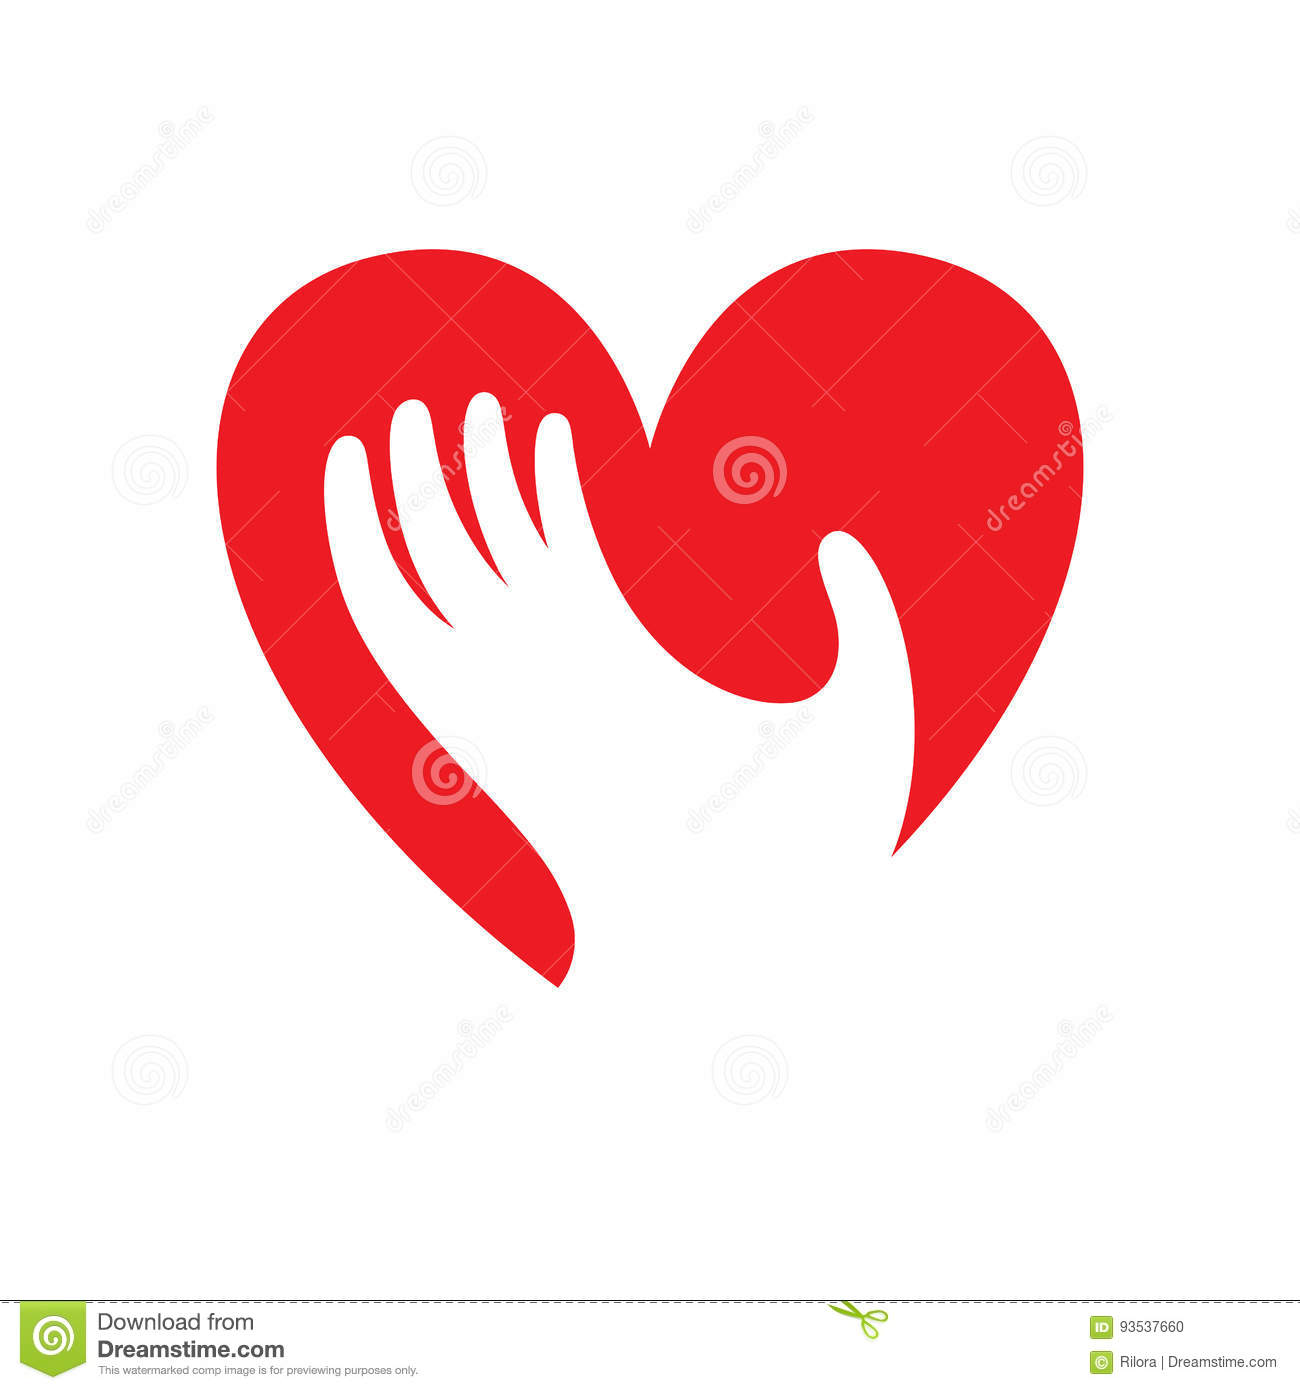 Heart with hand symbol sign icon logo template for charity heart with hand symbol sign icon logo template for charity health voluntary etc biocorpaavc